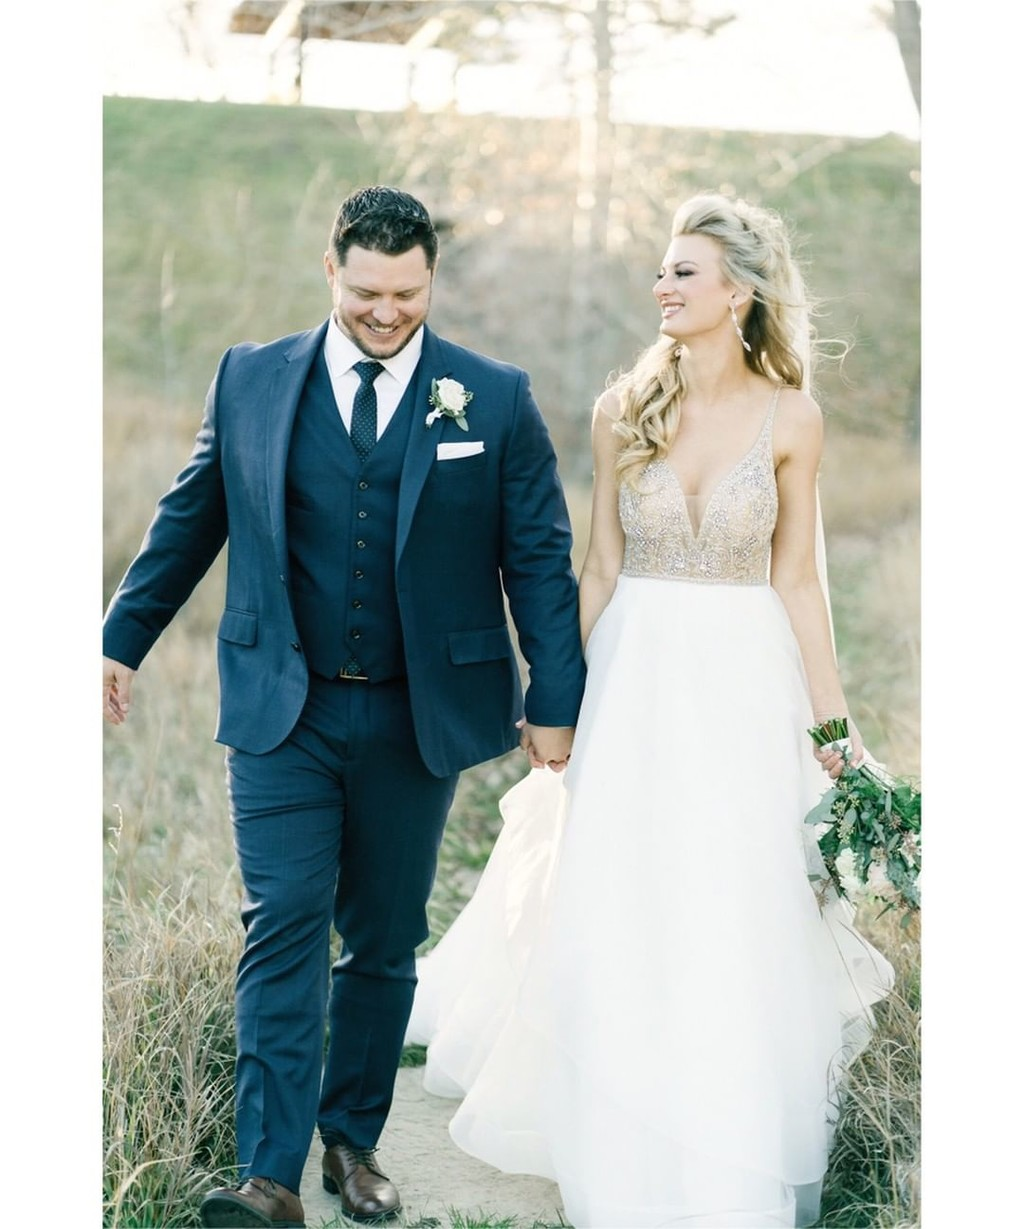 These smiles are the definition of Wedded Bliss! 'Summer' gown number LA8119.